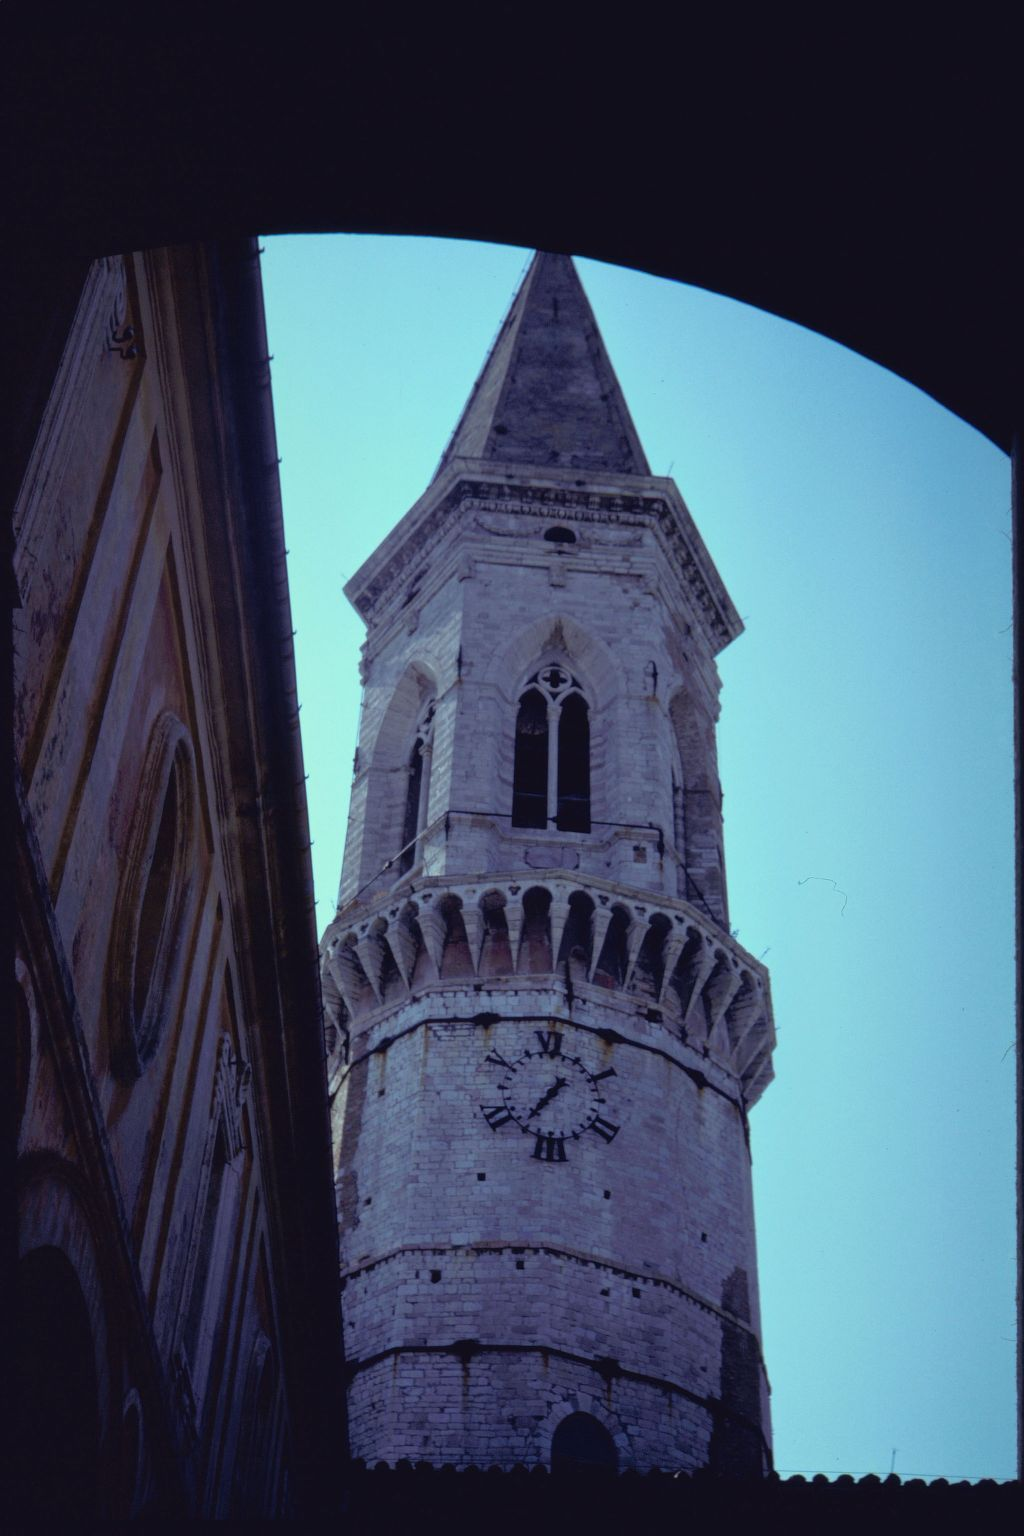 The tower of the Church of San Pietro, Perugia.